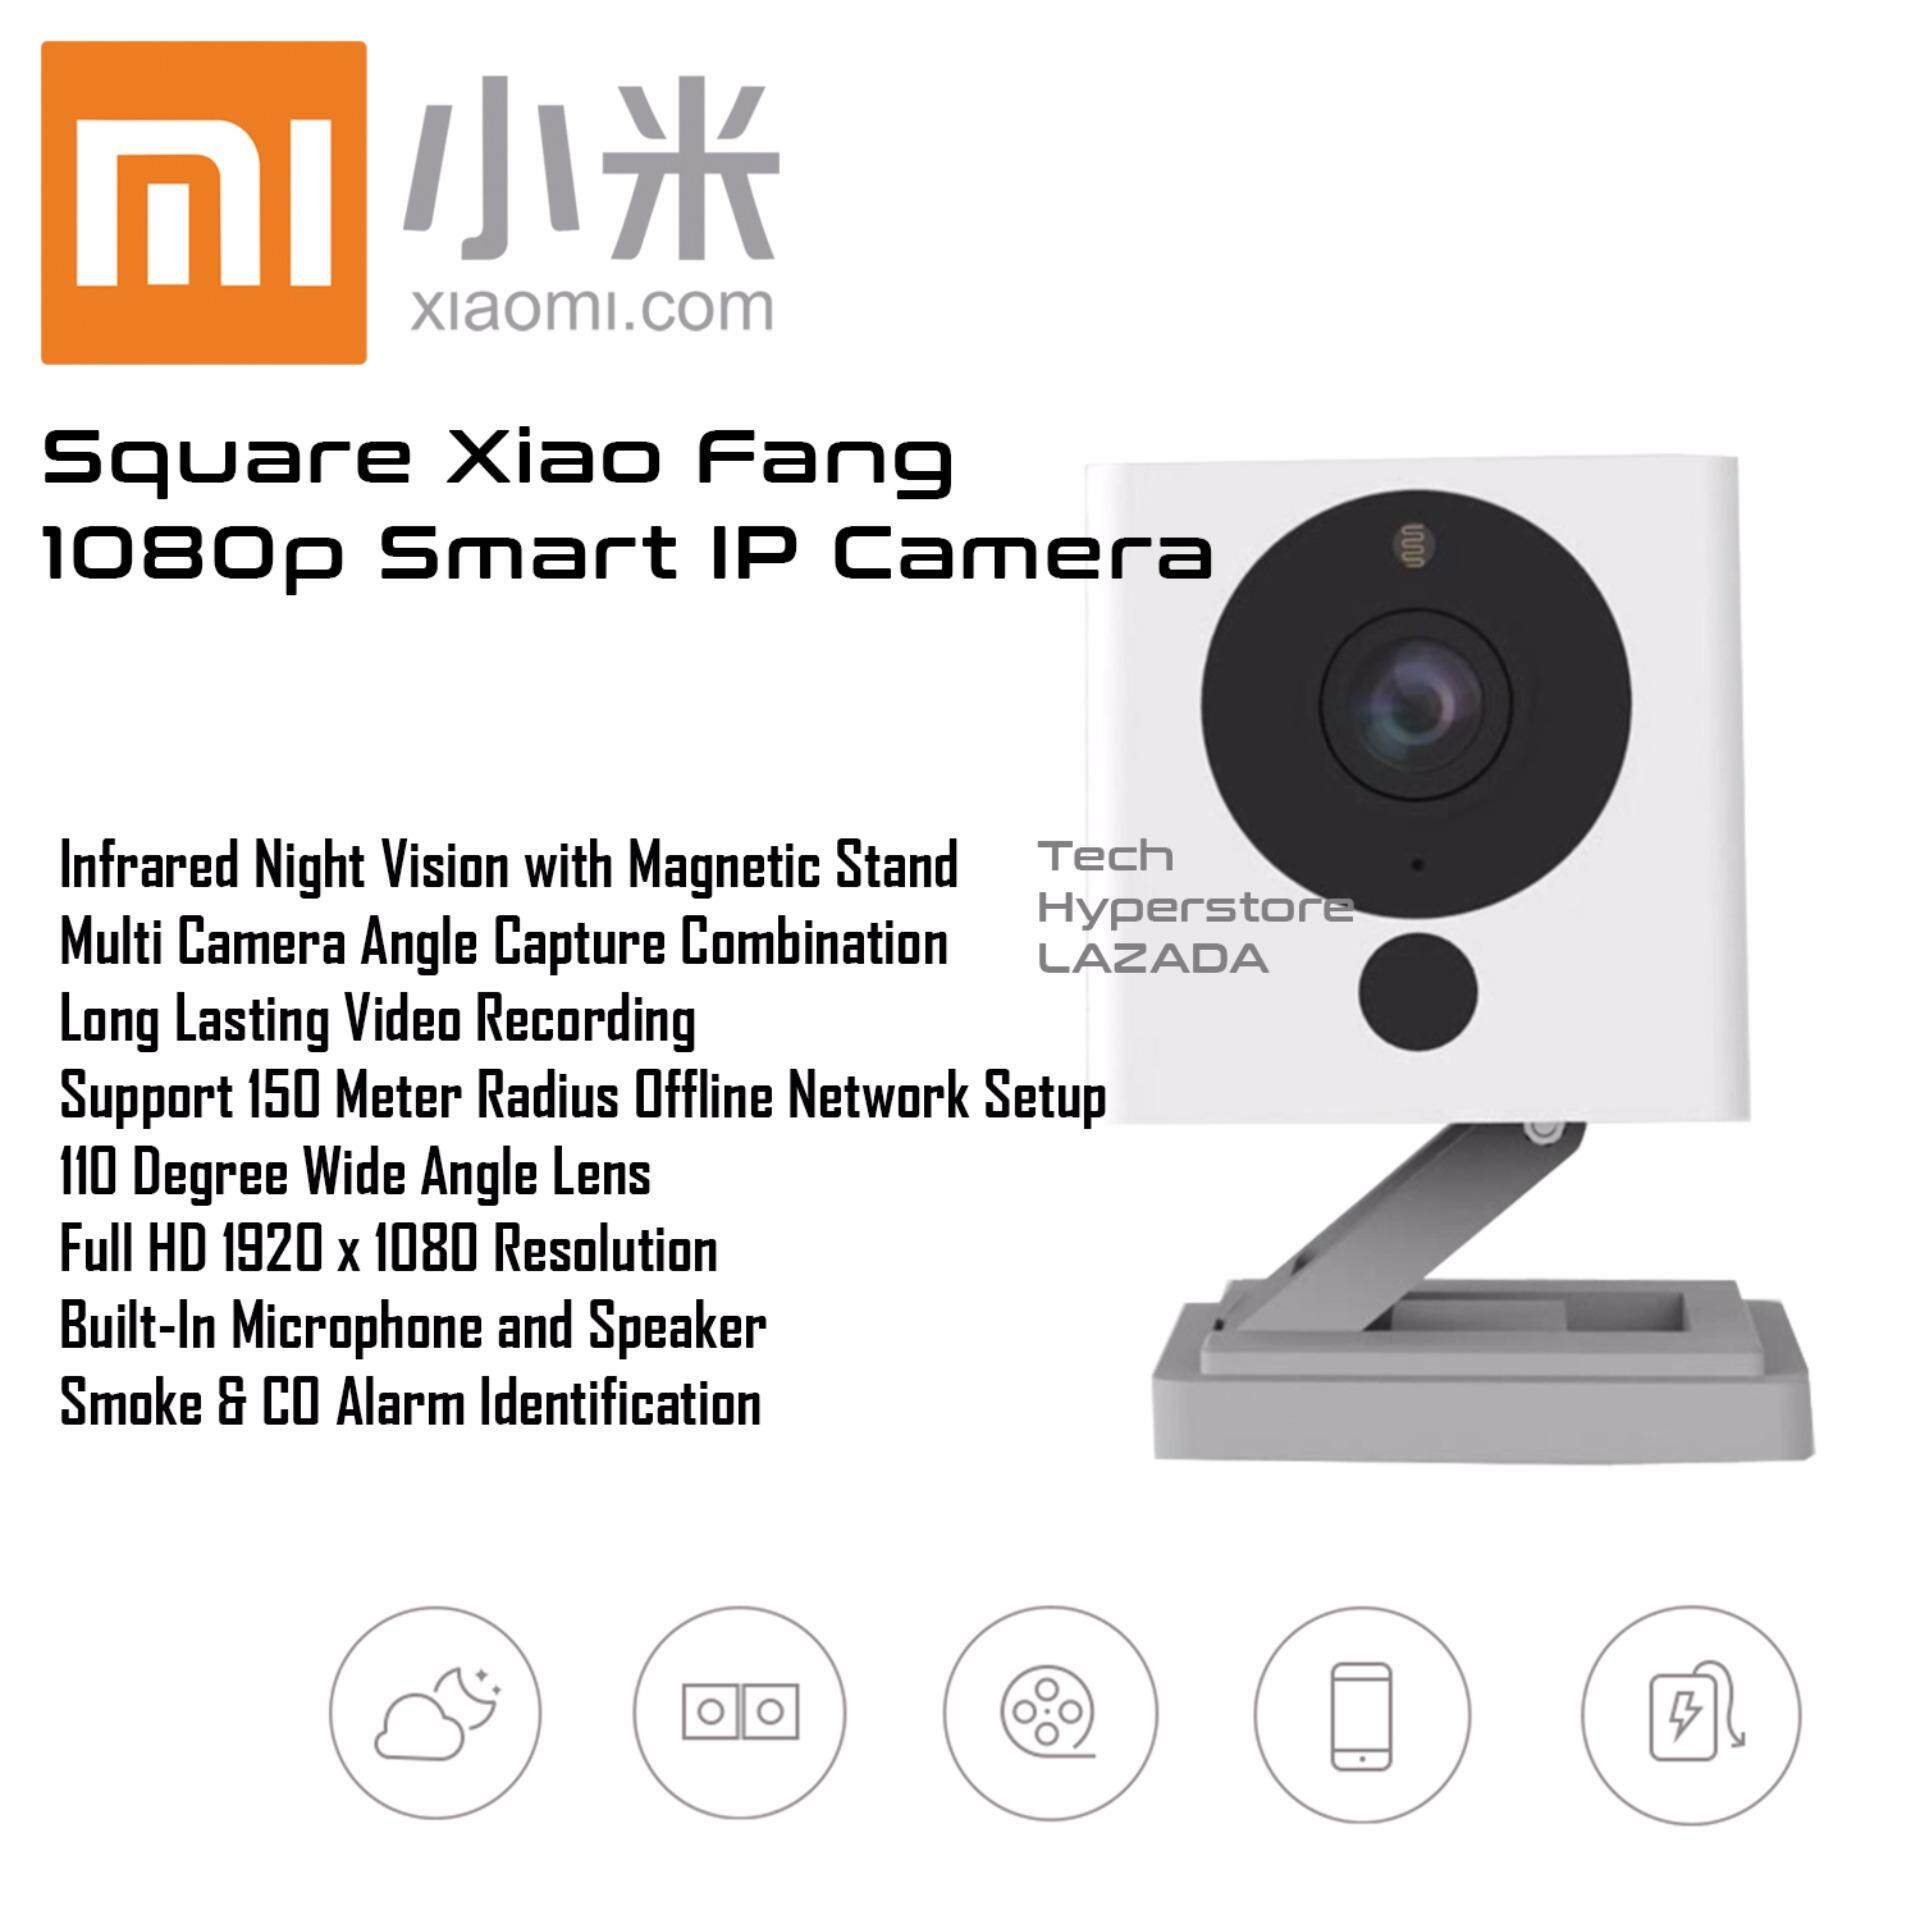 Ip Cameras By Xiaomi Reviews Ratings And Best Price In Kl Selangor Kamera Xiao Fang 1080p Cam Cctv Mi Square Smart Camera Isc5 For Android Ios Devices White